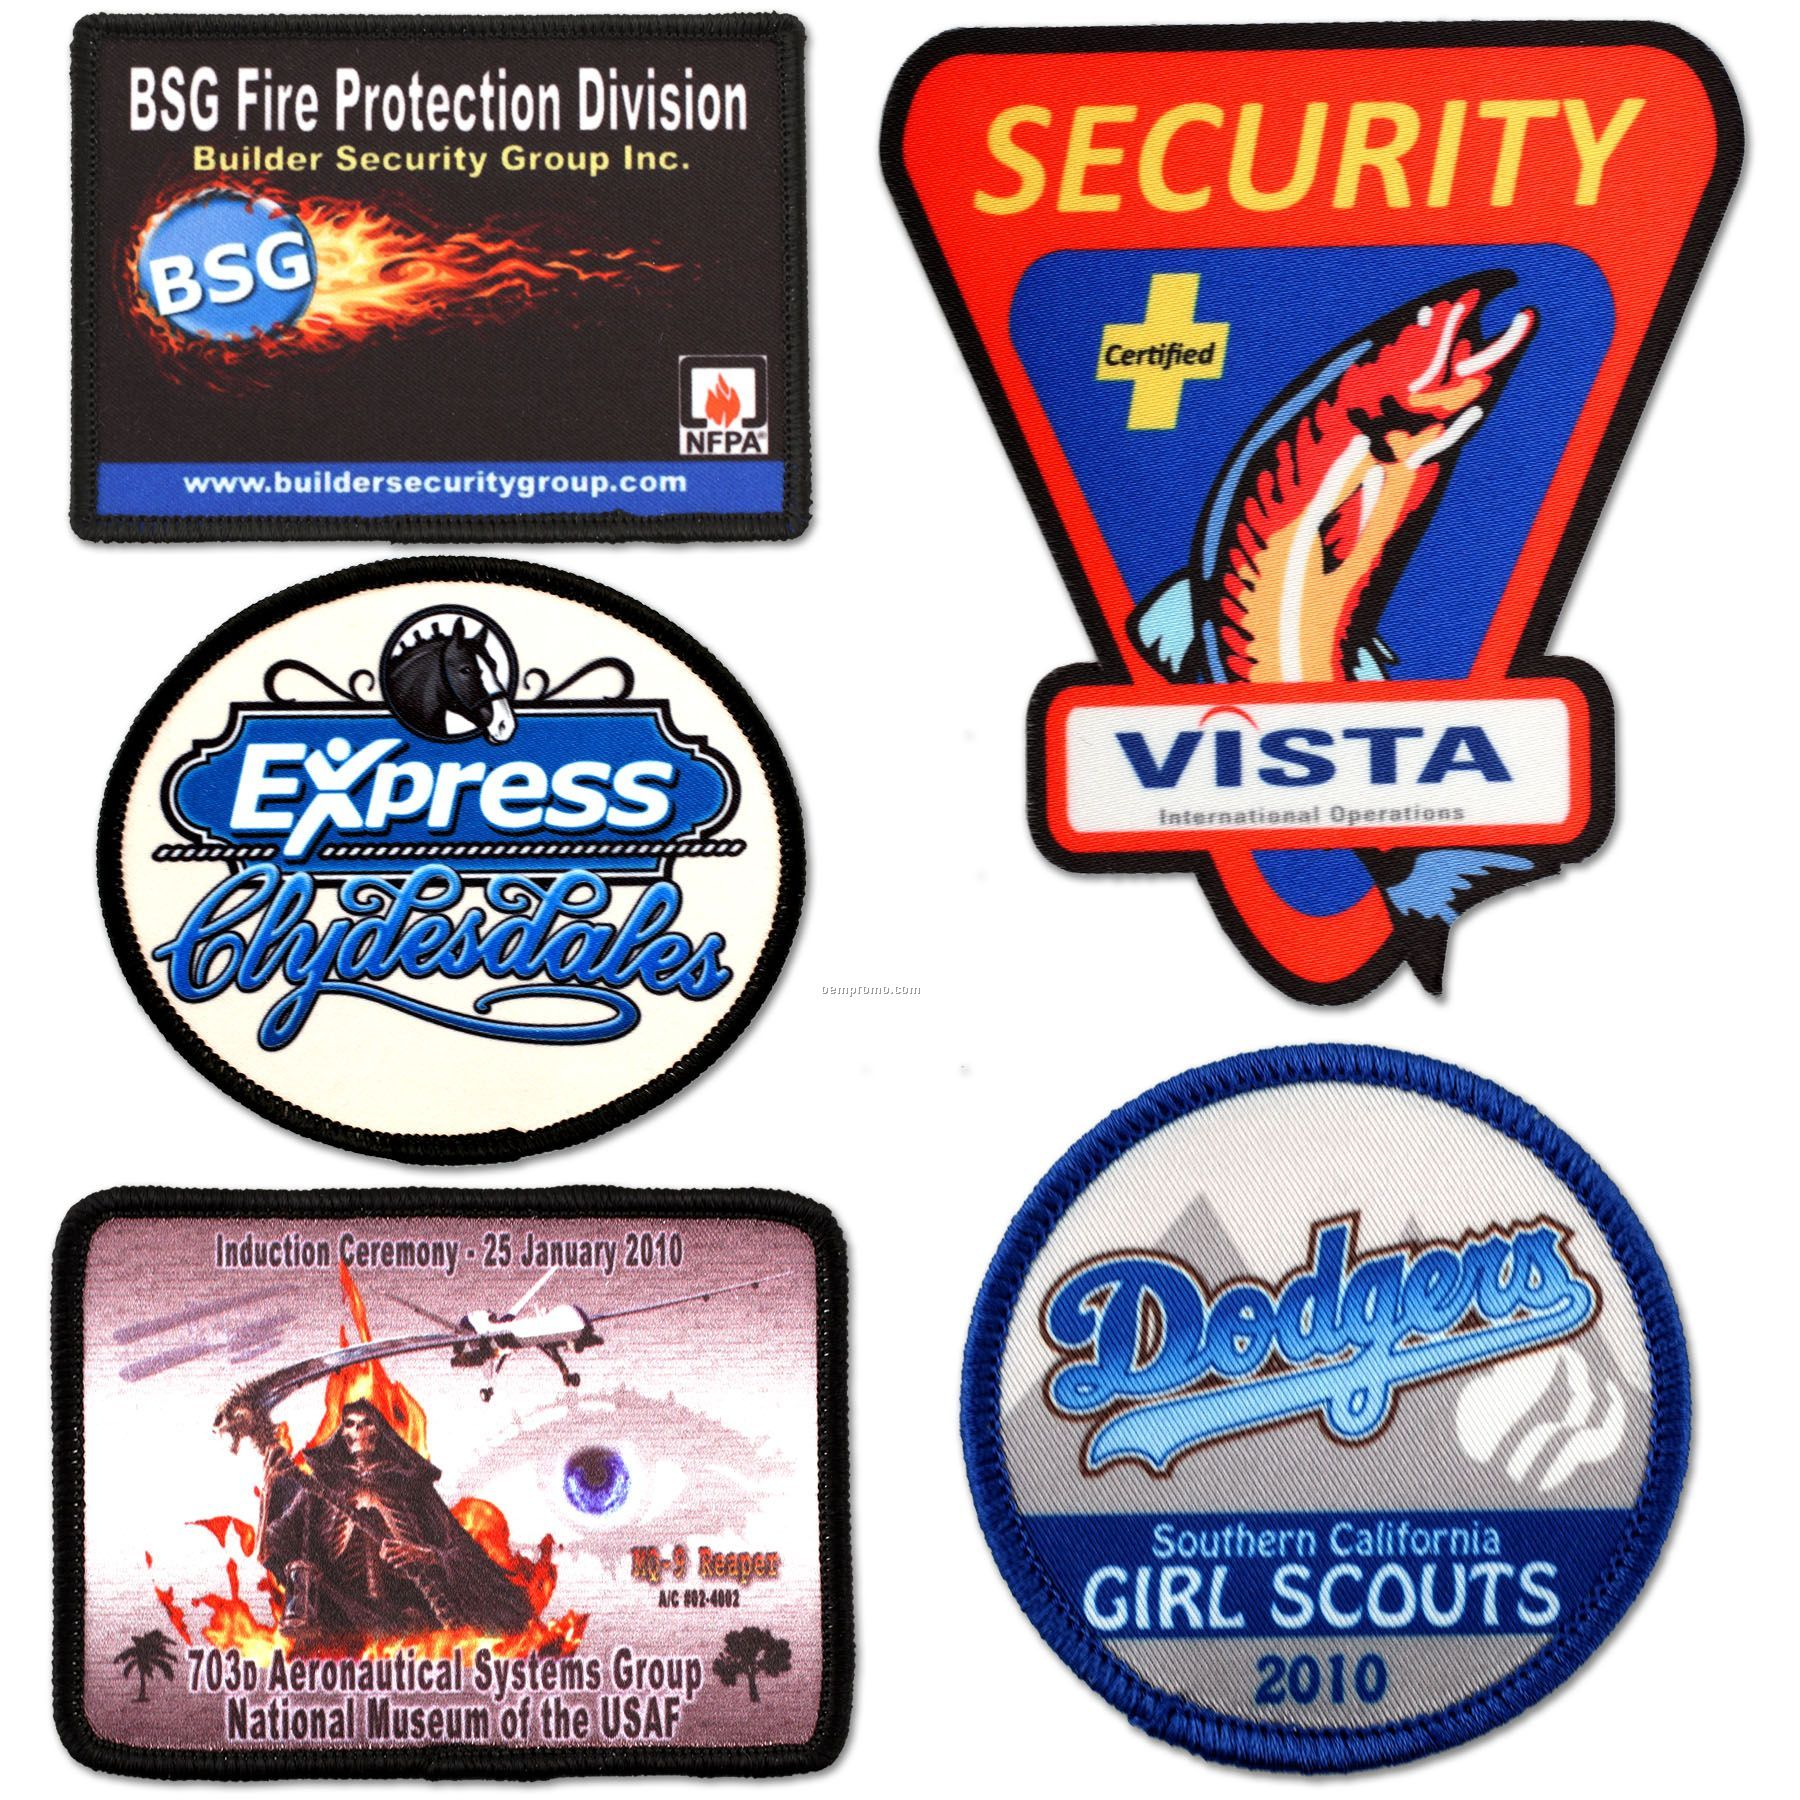 4-color Process / Sublimated Patch (12 Sq. In.)